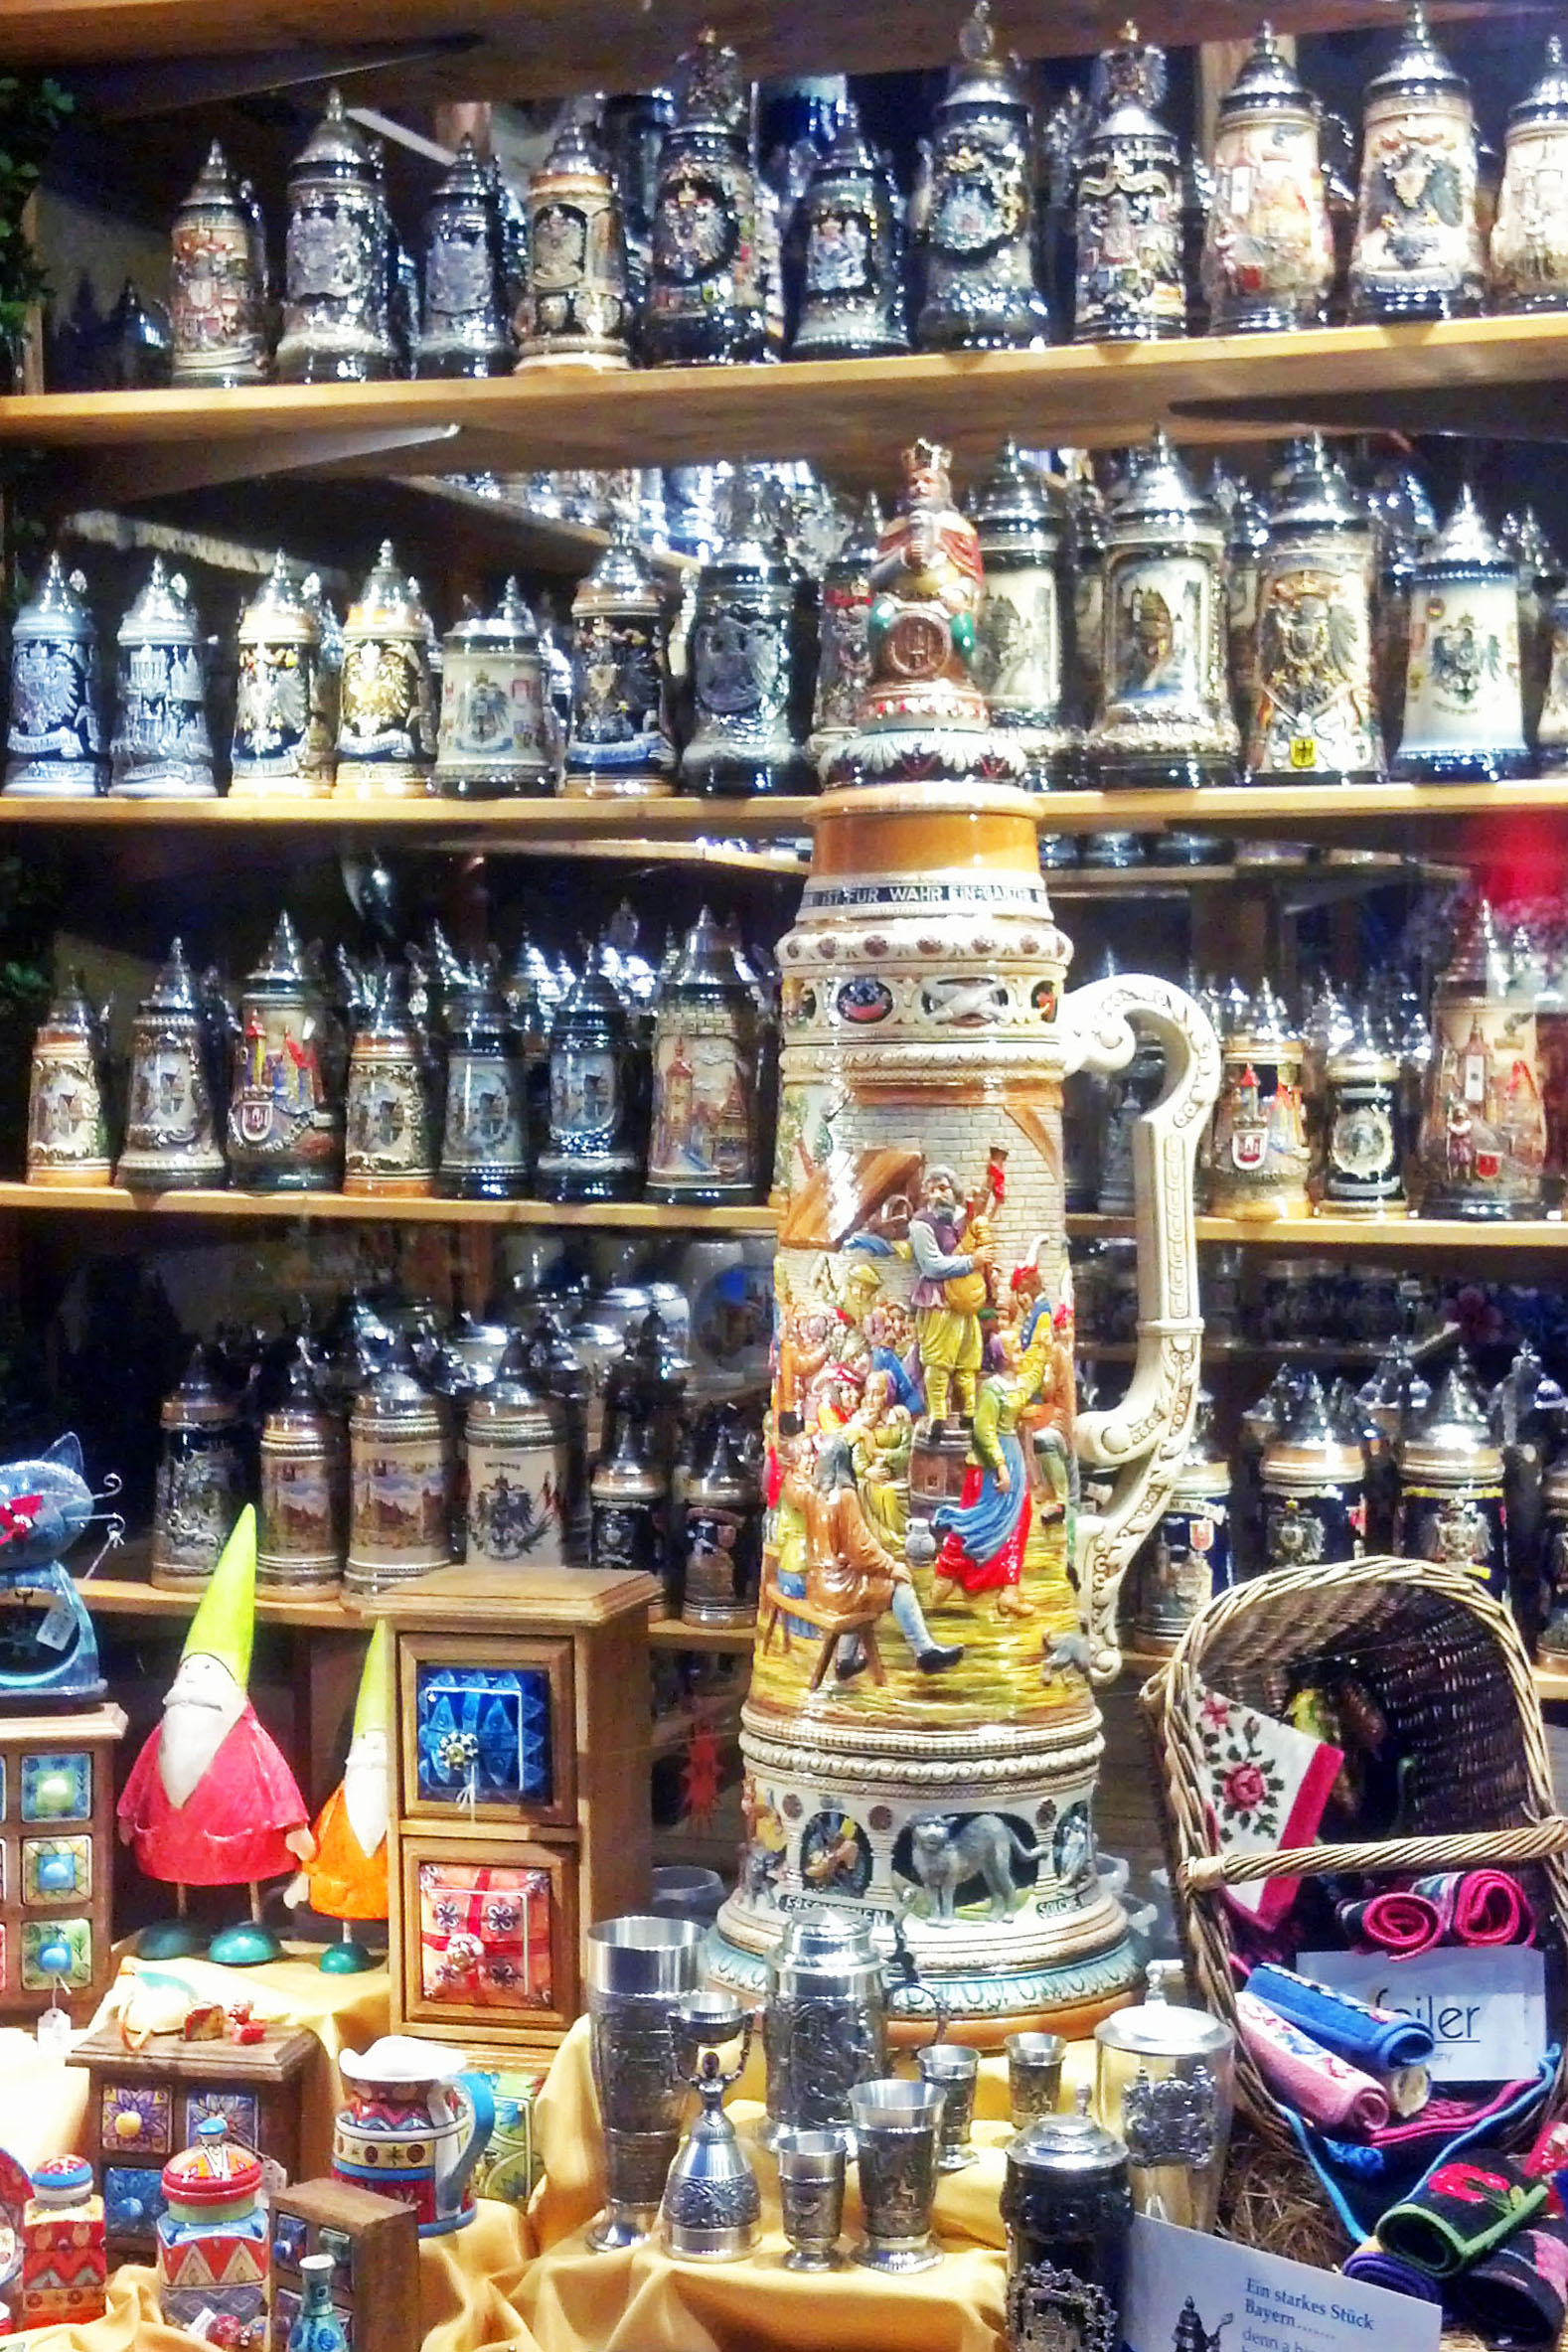 A store window full of steins.